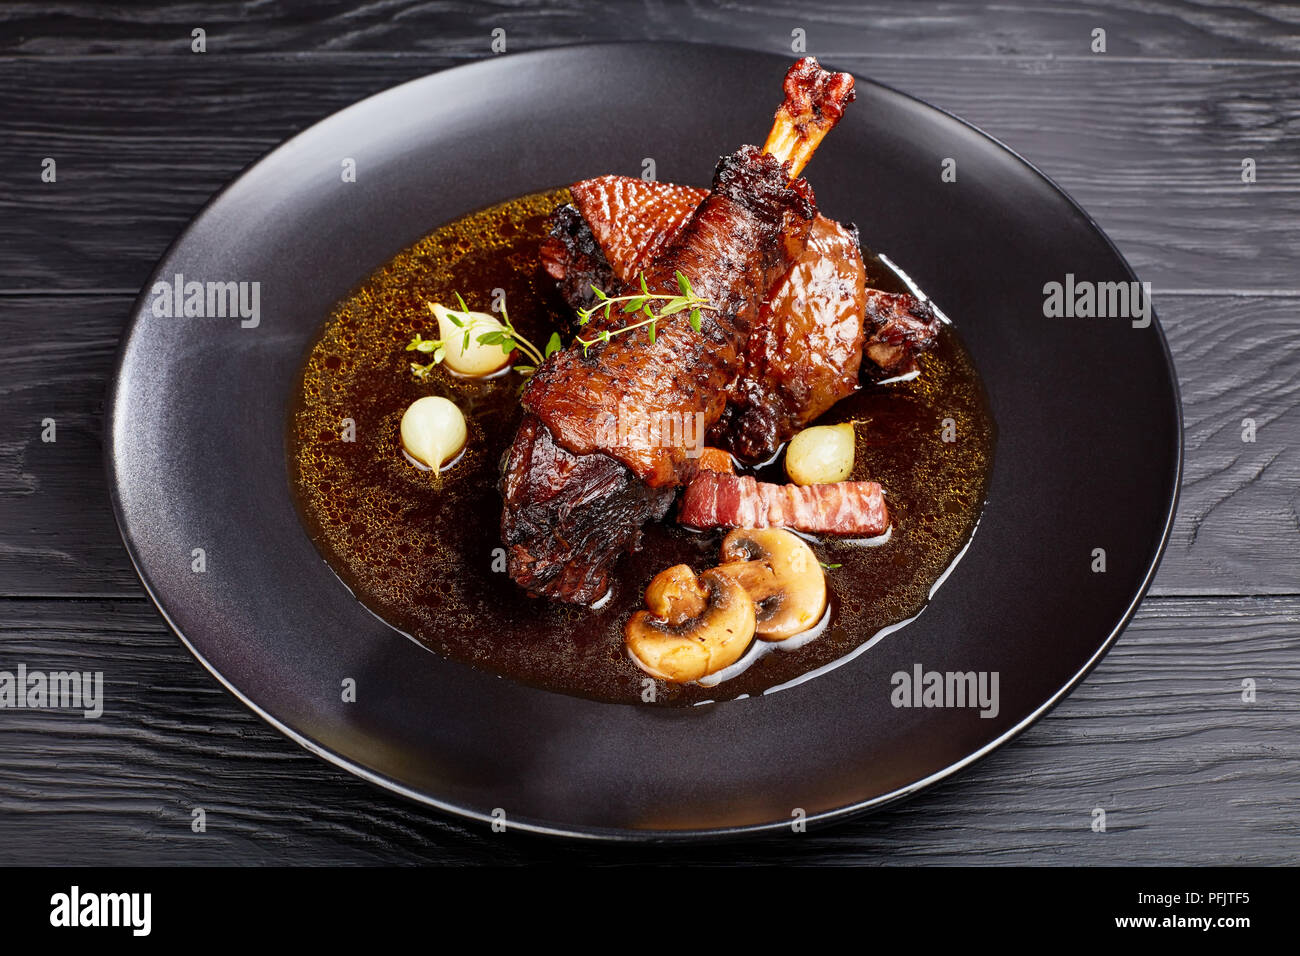 portion of tasty chicken stew - thigh and drumstick braised with wine, herbs, mushrooms and vegetables served on black plate, authentic french recipe  - Stock Image